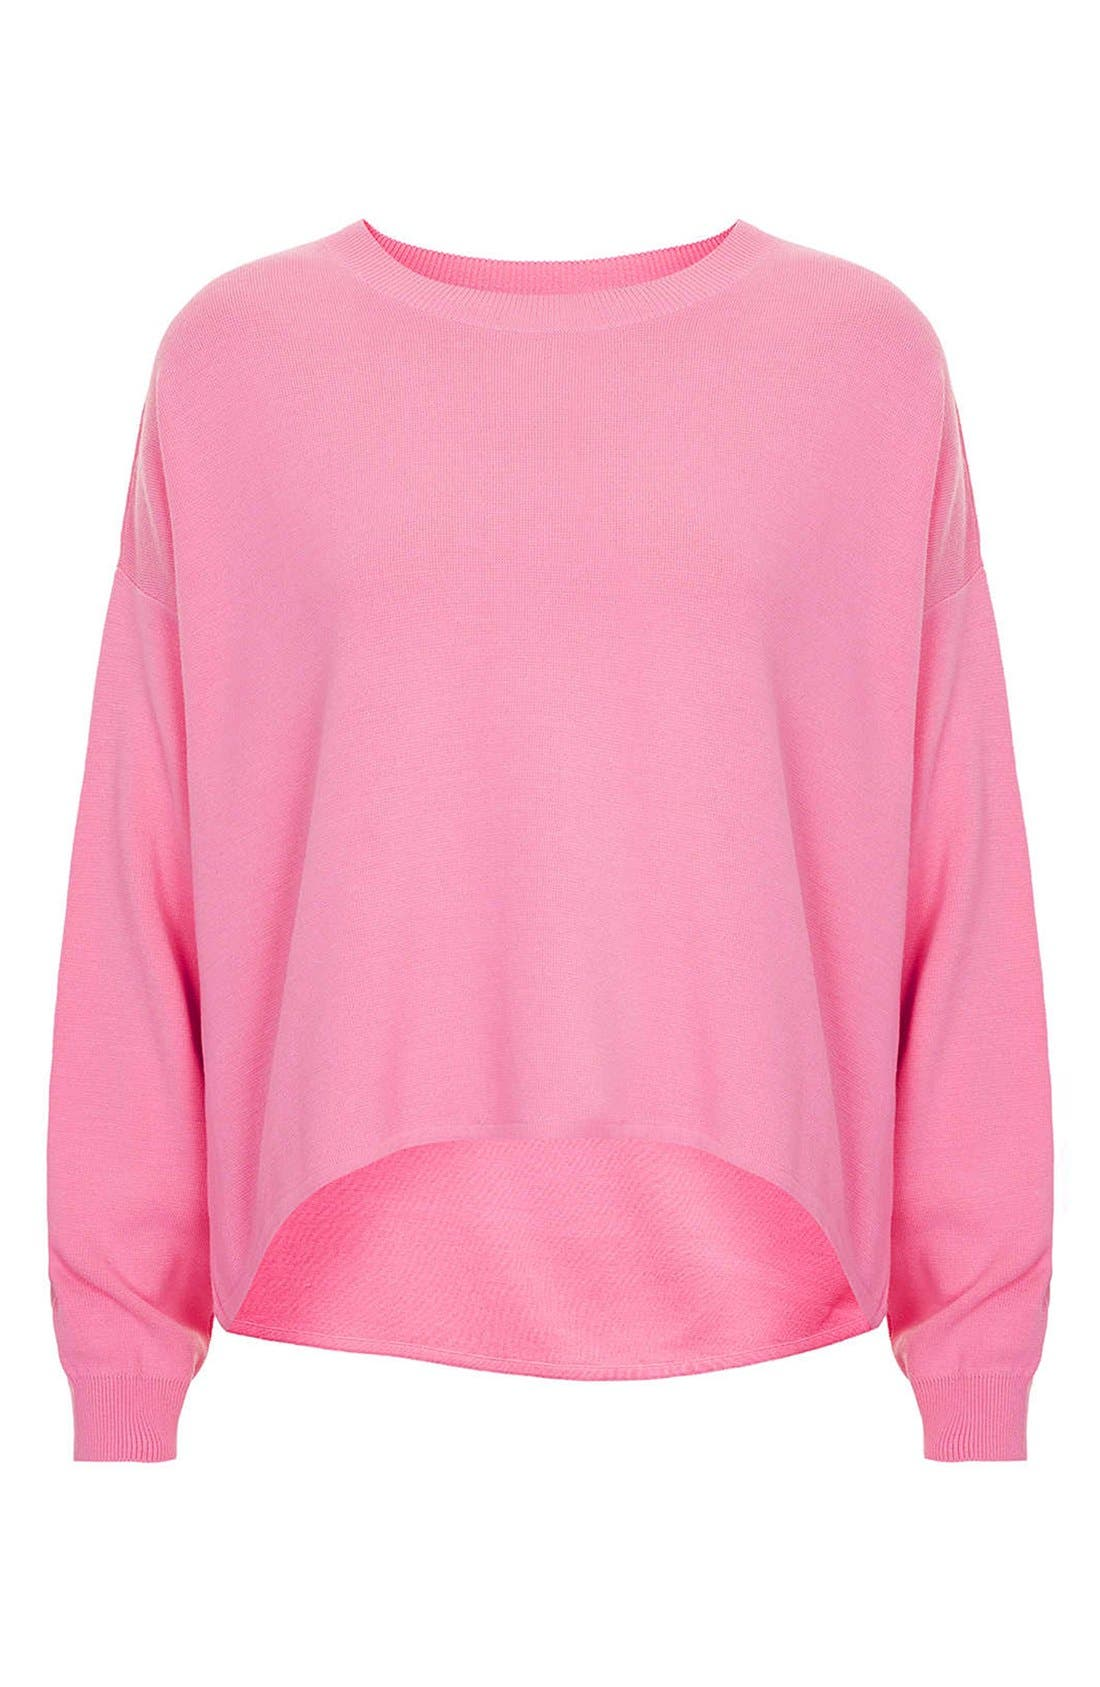 Alternate Image 3  - Topshop High/Low Knit Sweater